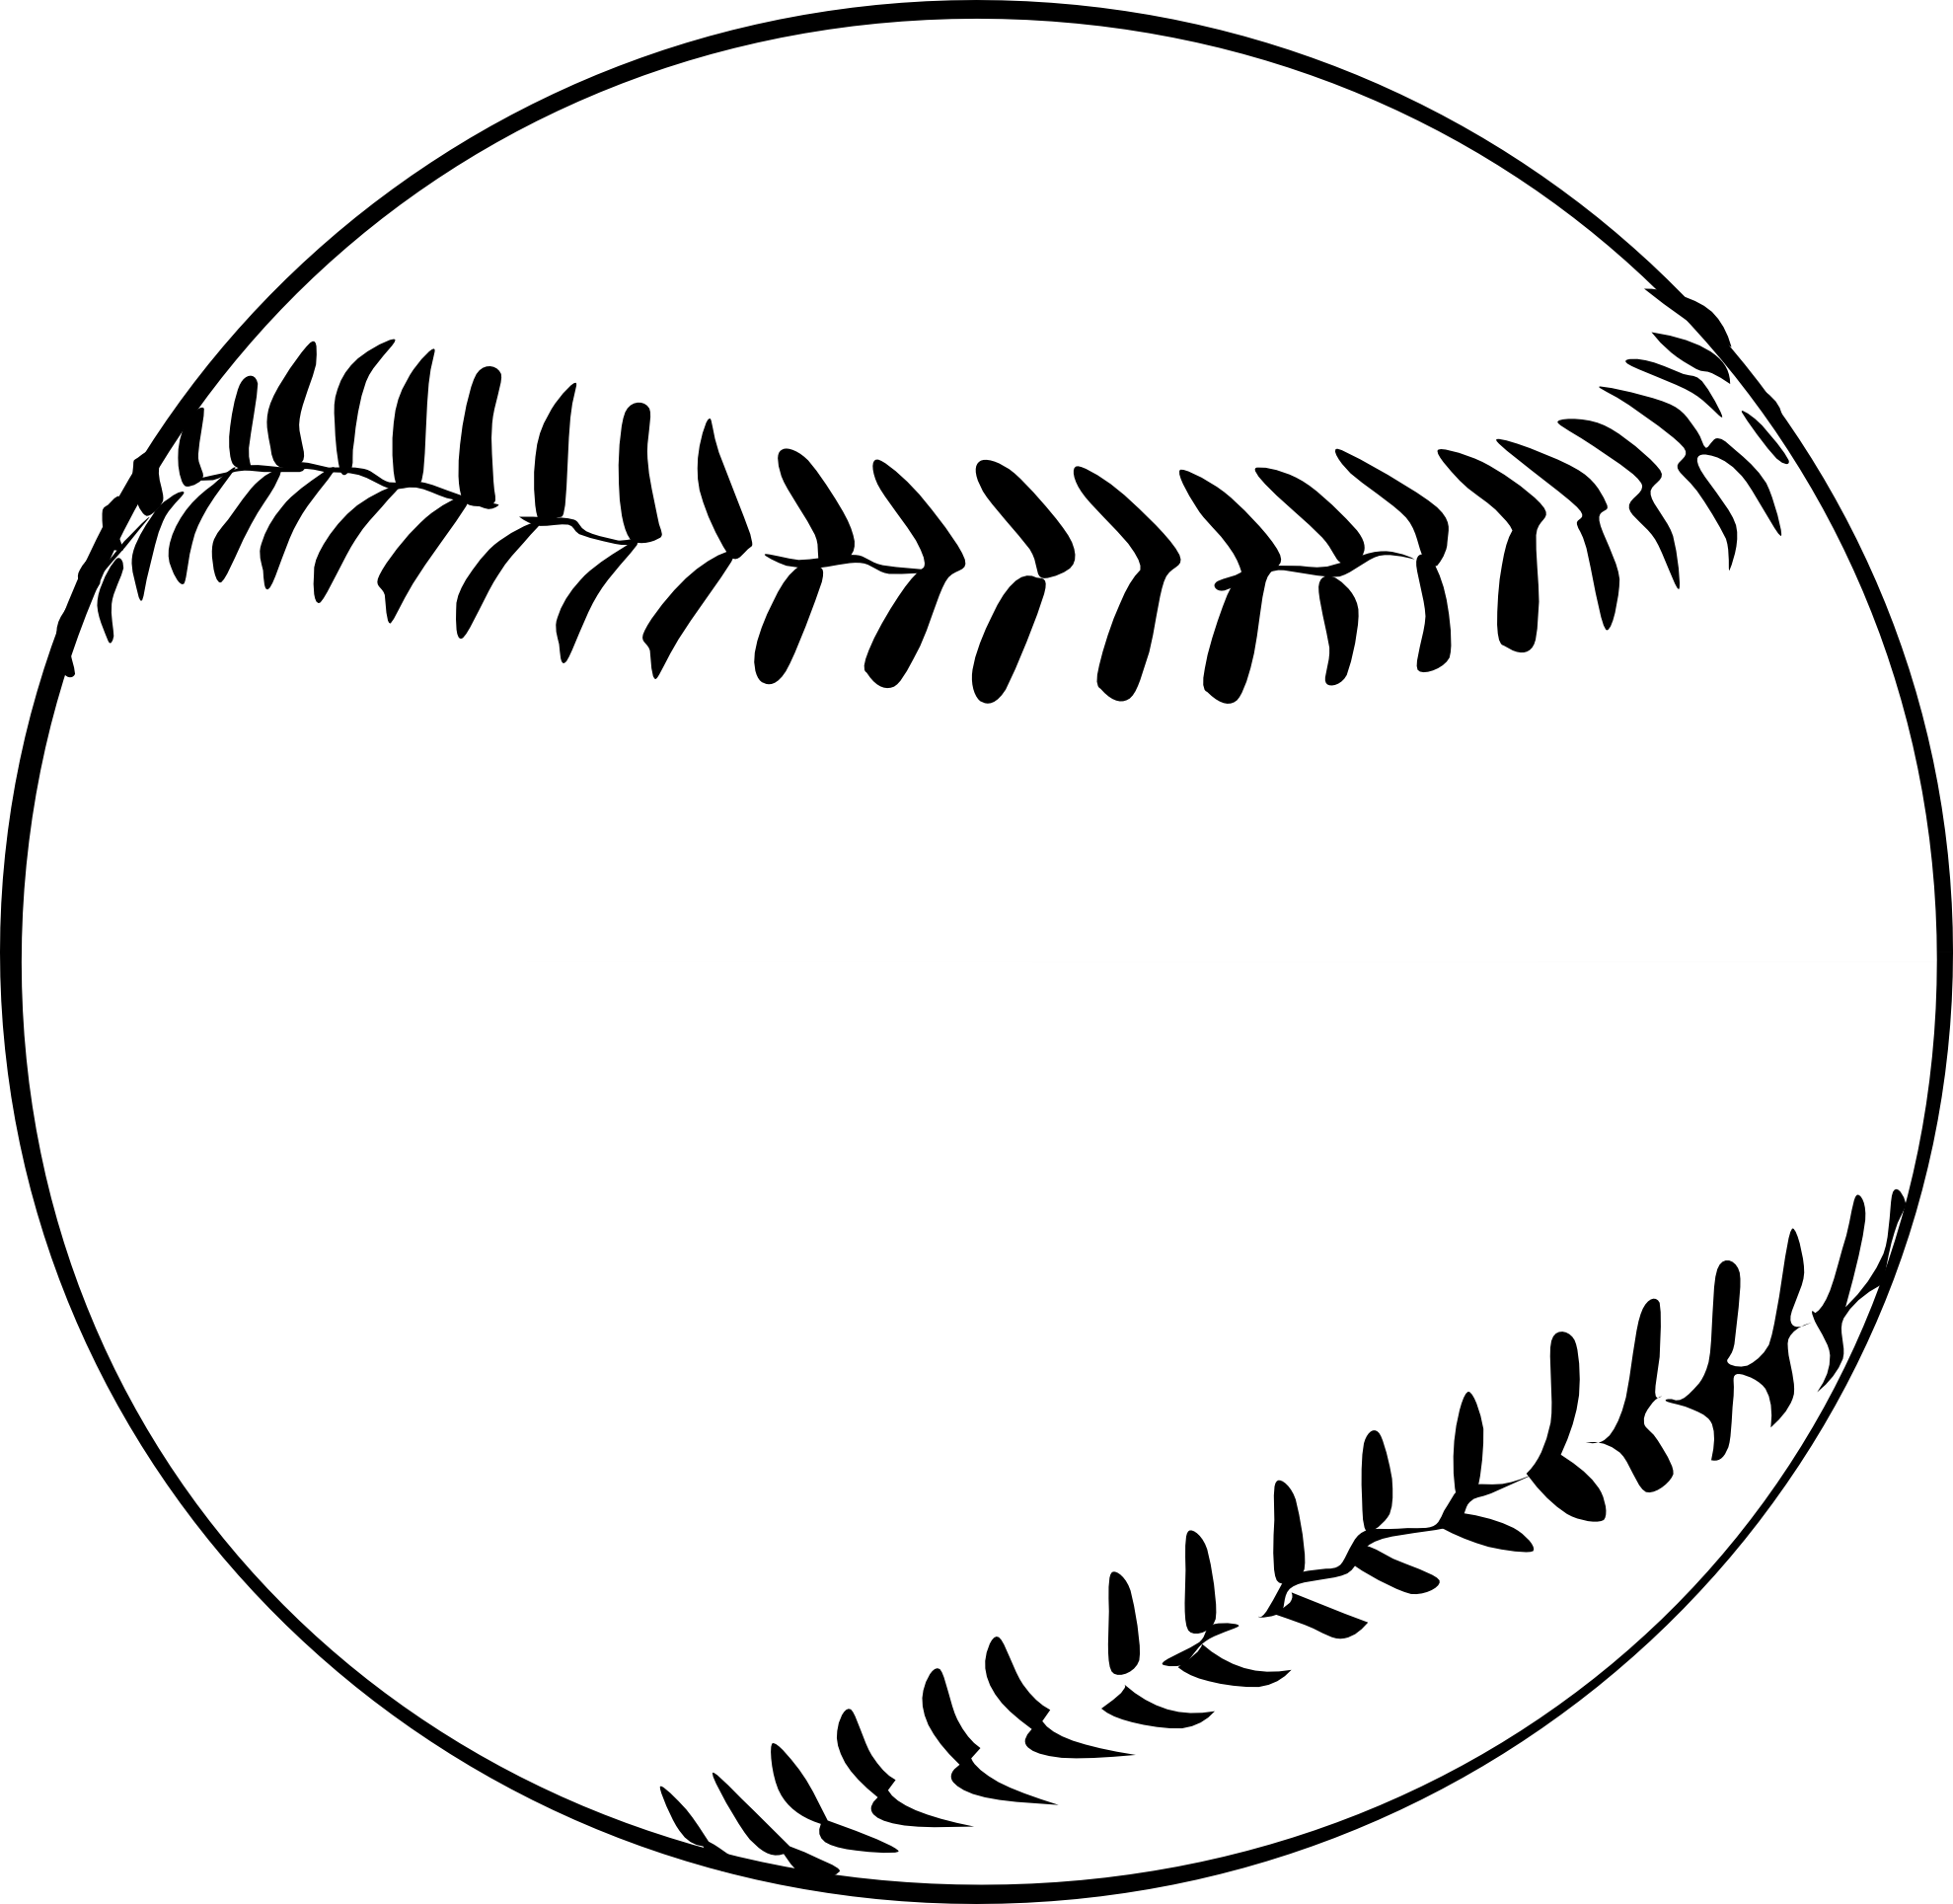 Softball clipart batting cage. Black and white vector